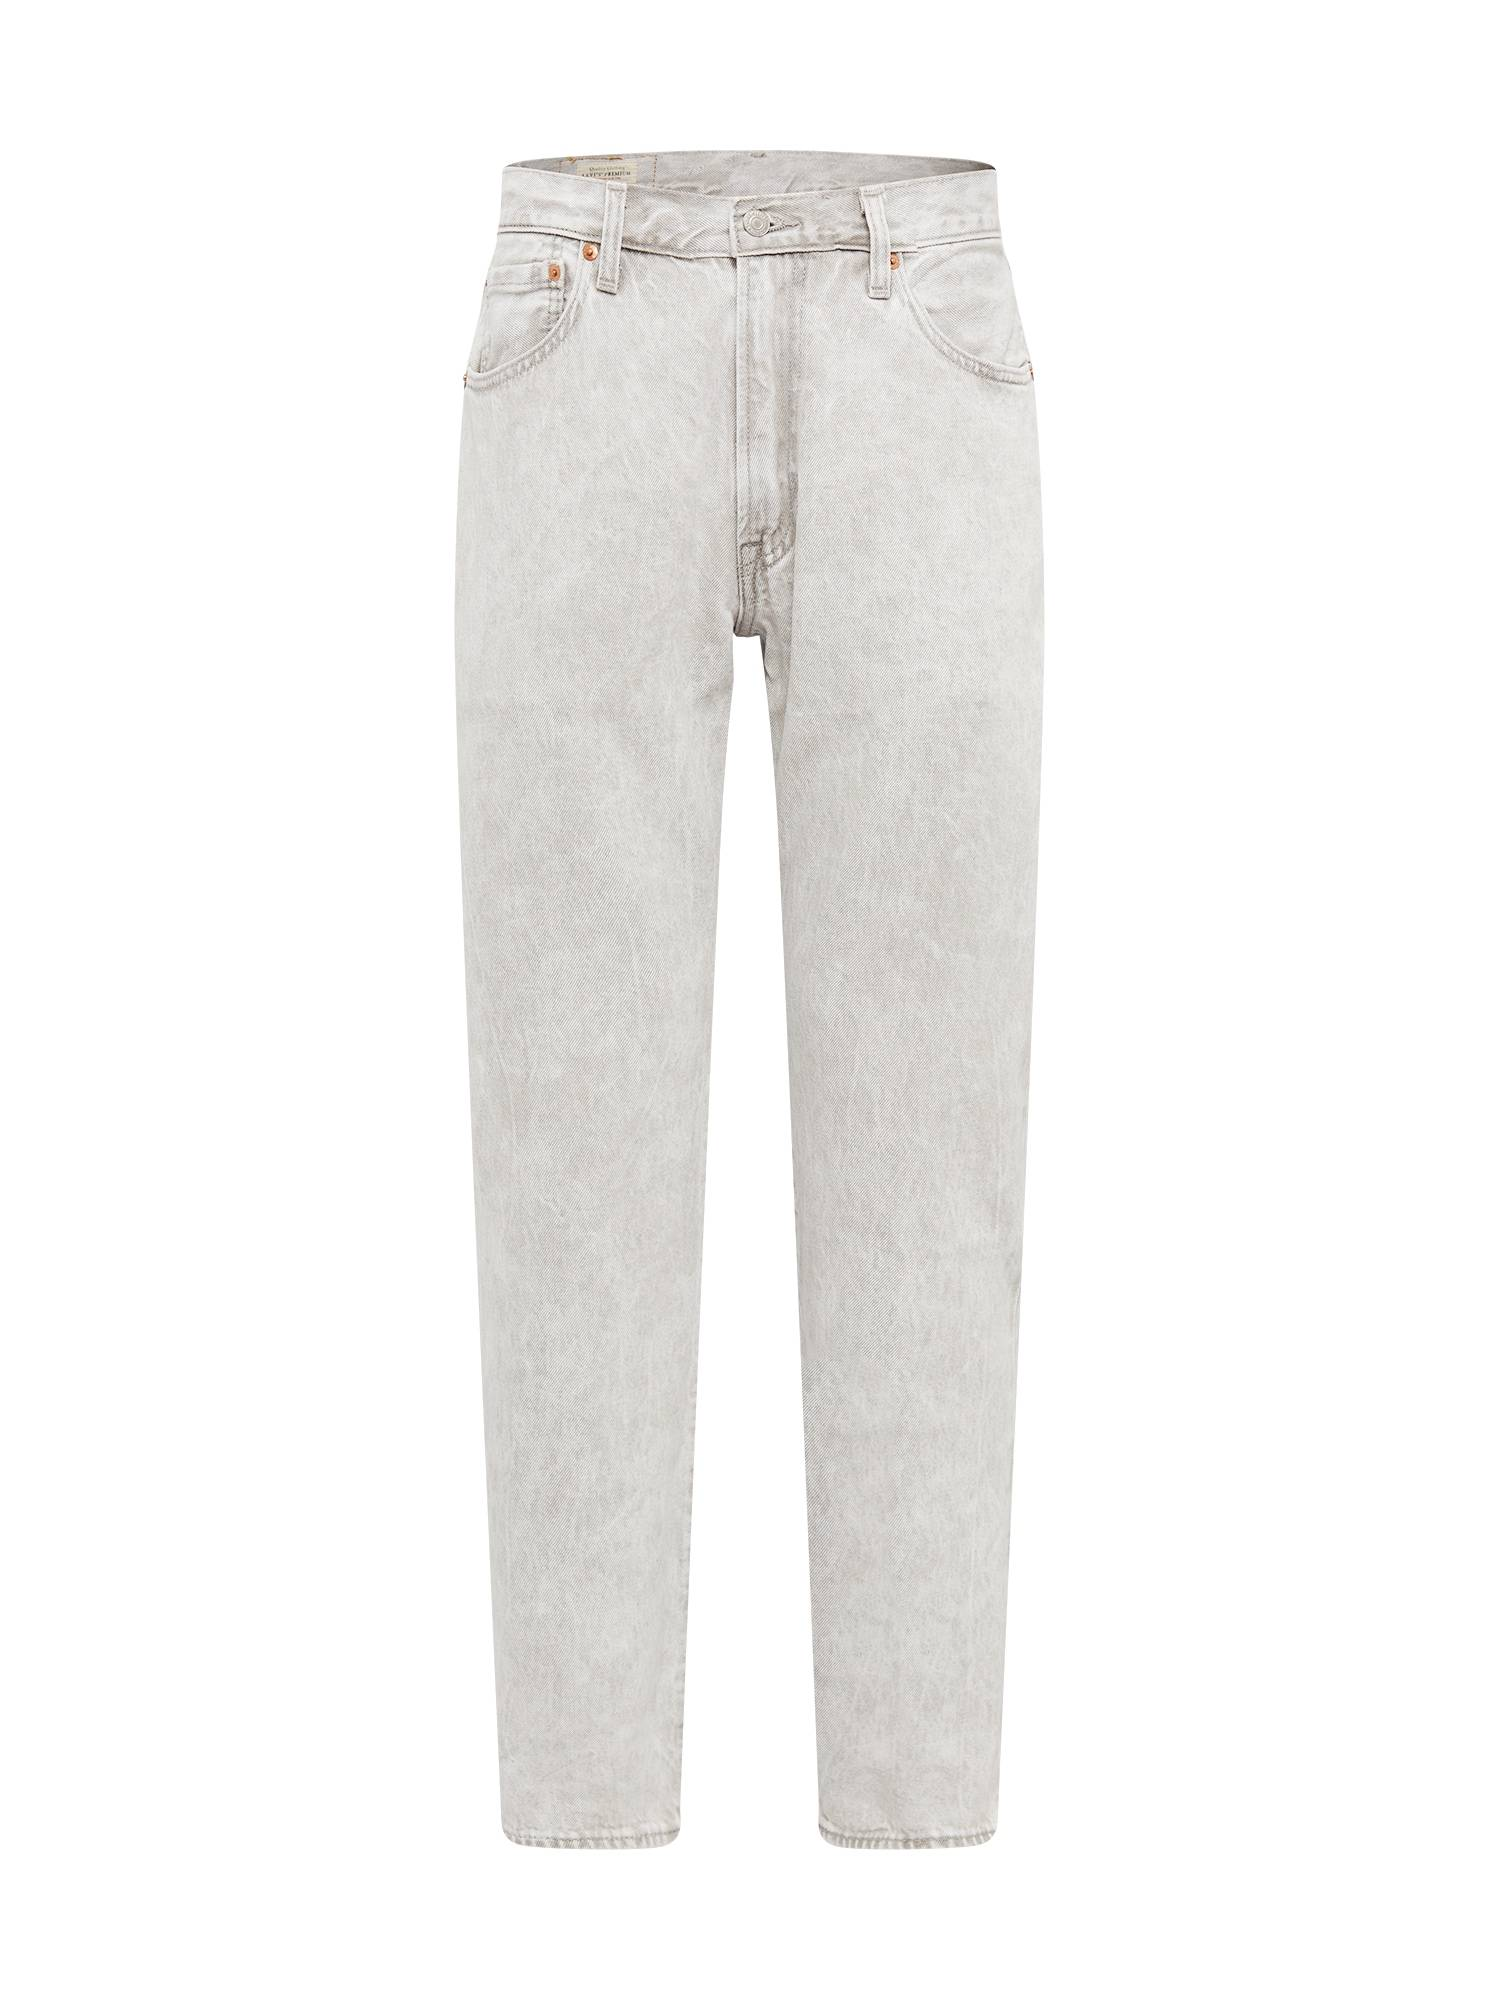 LEVI'S Jean '551 Z AUTHENTIC STRAIGHT'  - Gris - Taille: 30 - male